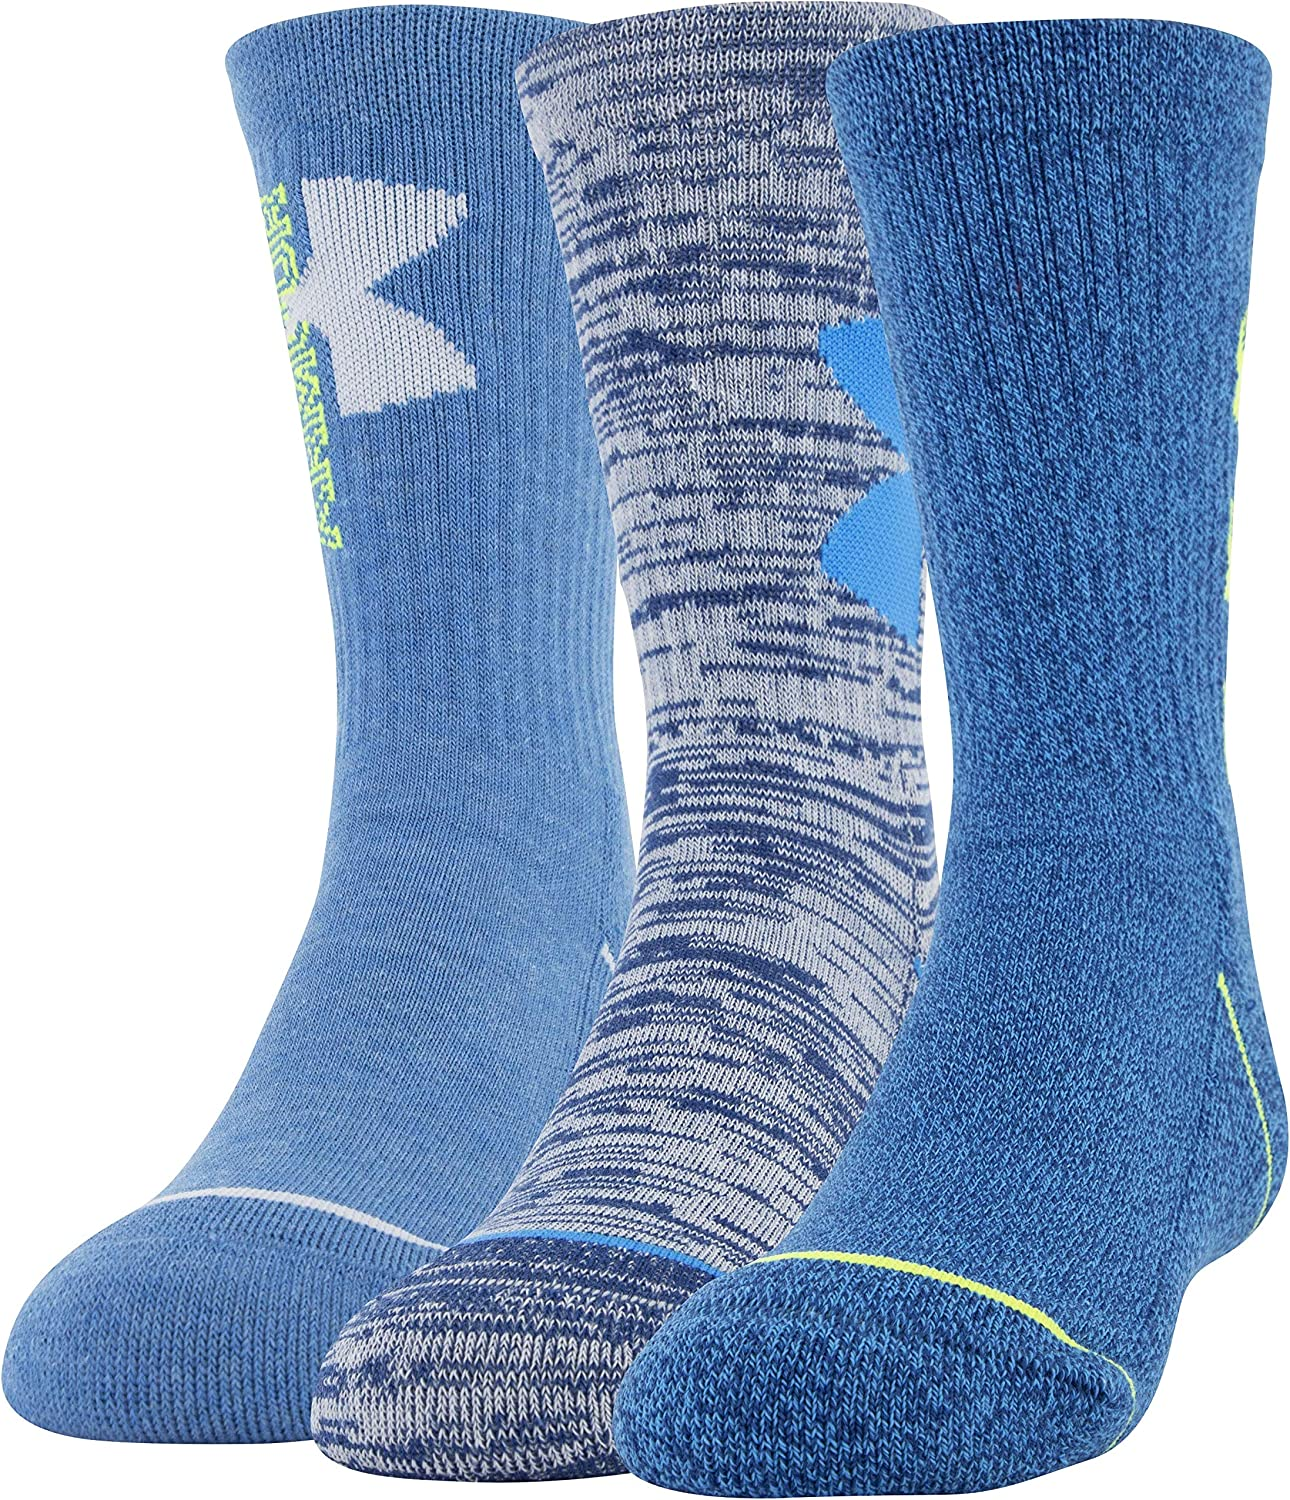 Under Armour Youth Phenom Crew Socks, 3-Pairs, Graphite Blue/Halo Gray, Shoe Size: Youth 13.5K-4Y: Sports & Outdoors